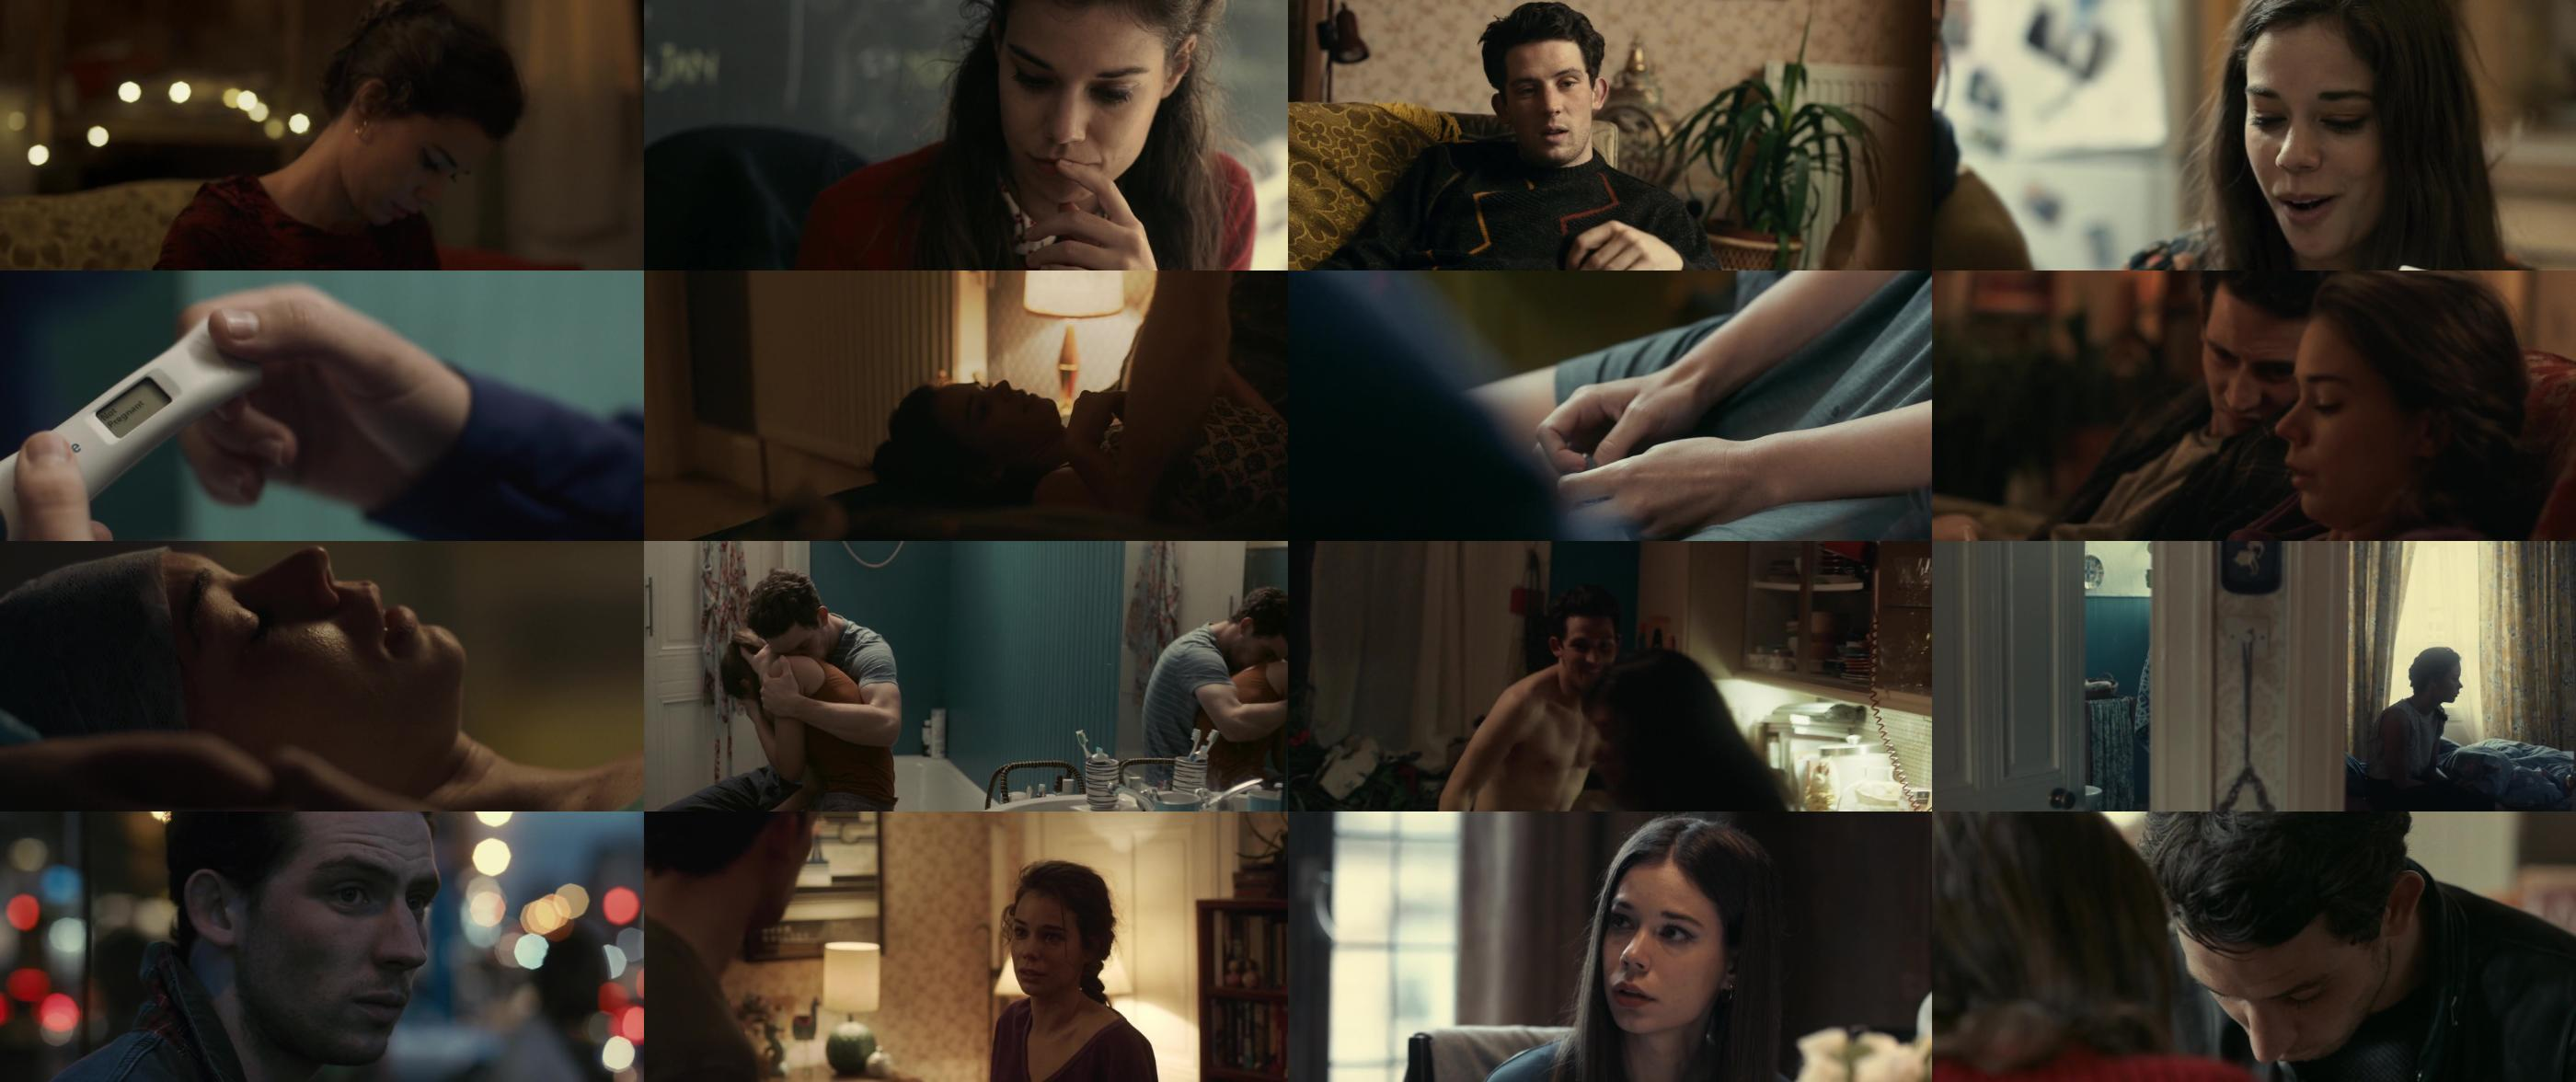 Only You (2018) WEBRip 1080p YIFY